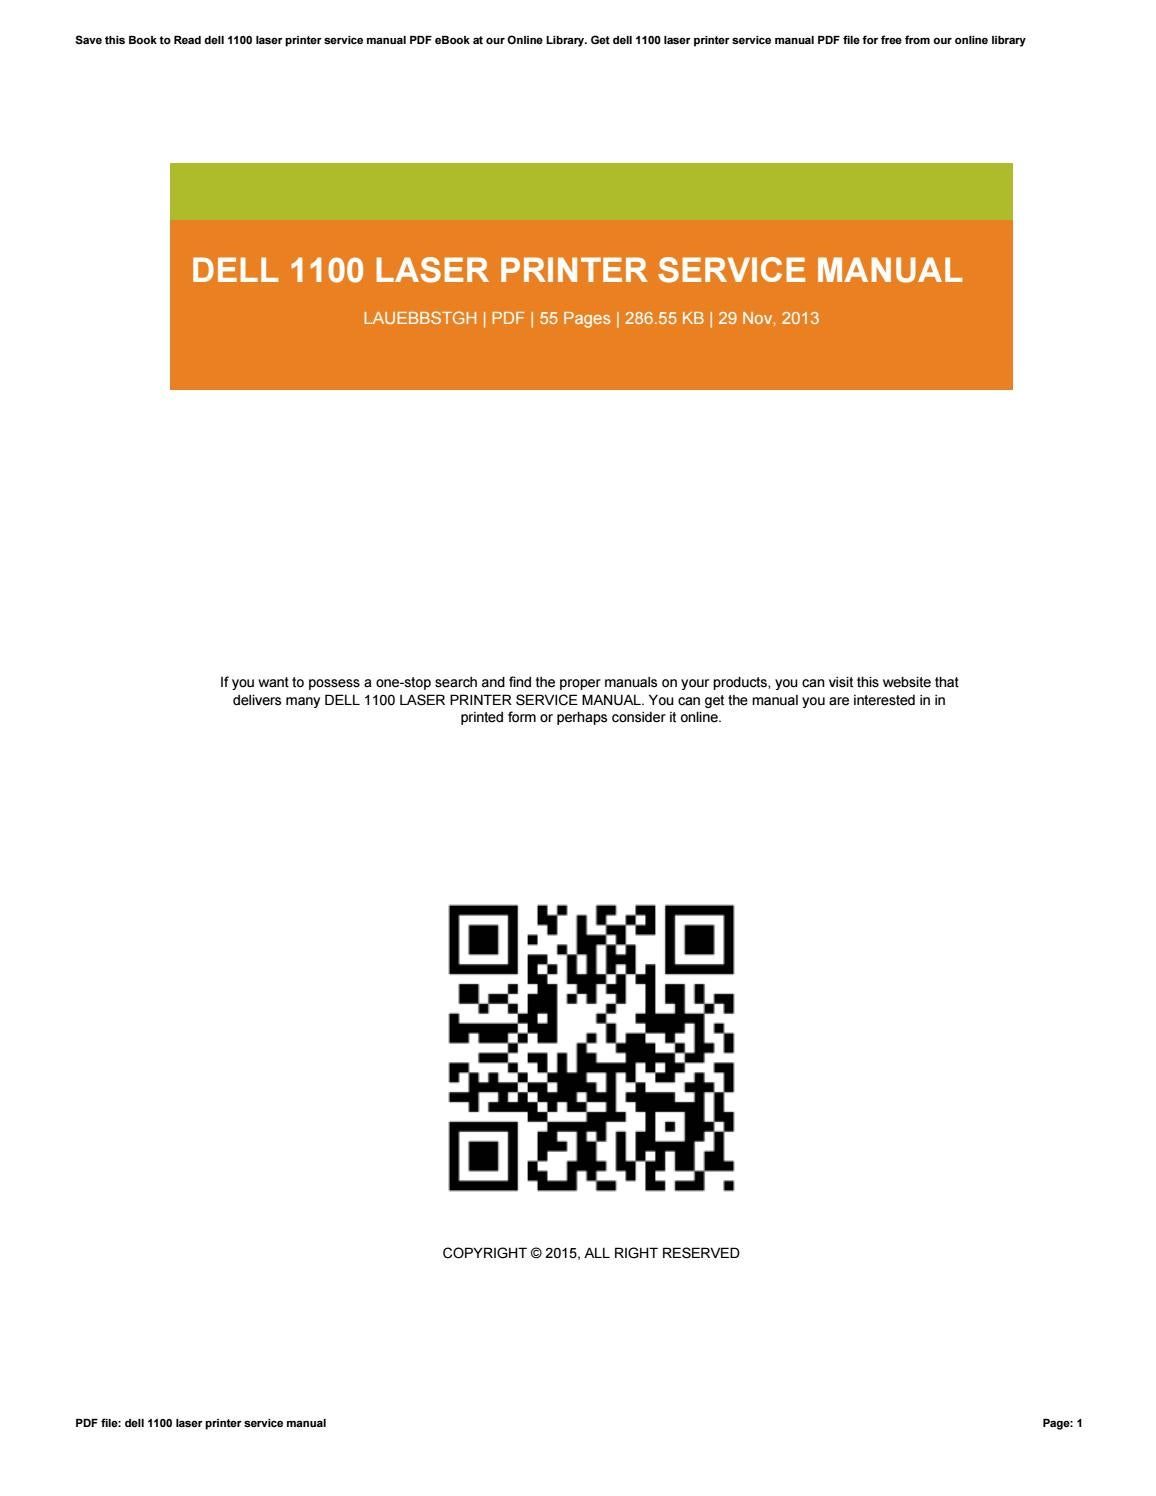 dell printer service manual how to and user guide instructions u2022 rh taxibermuda co Dell Laser Printer 3100 dell 3100cn service manual pdf